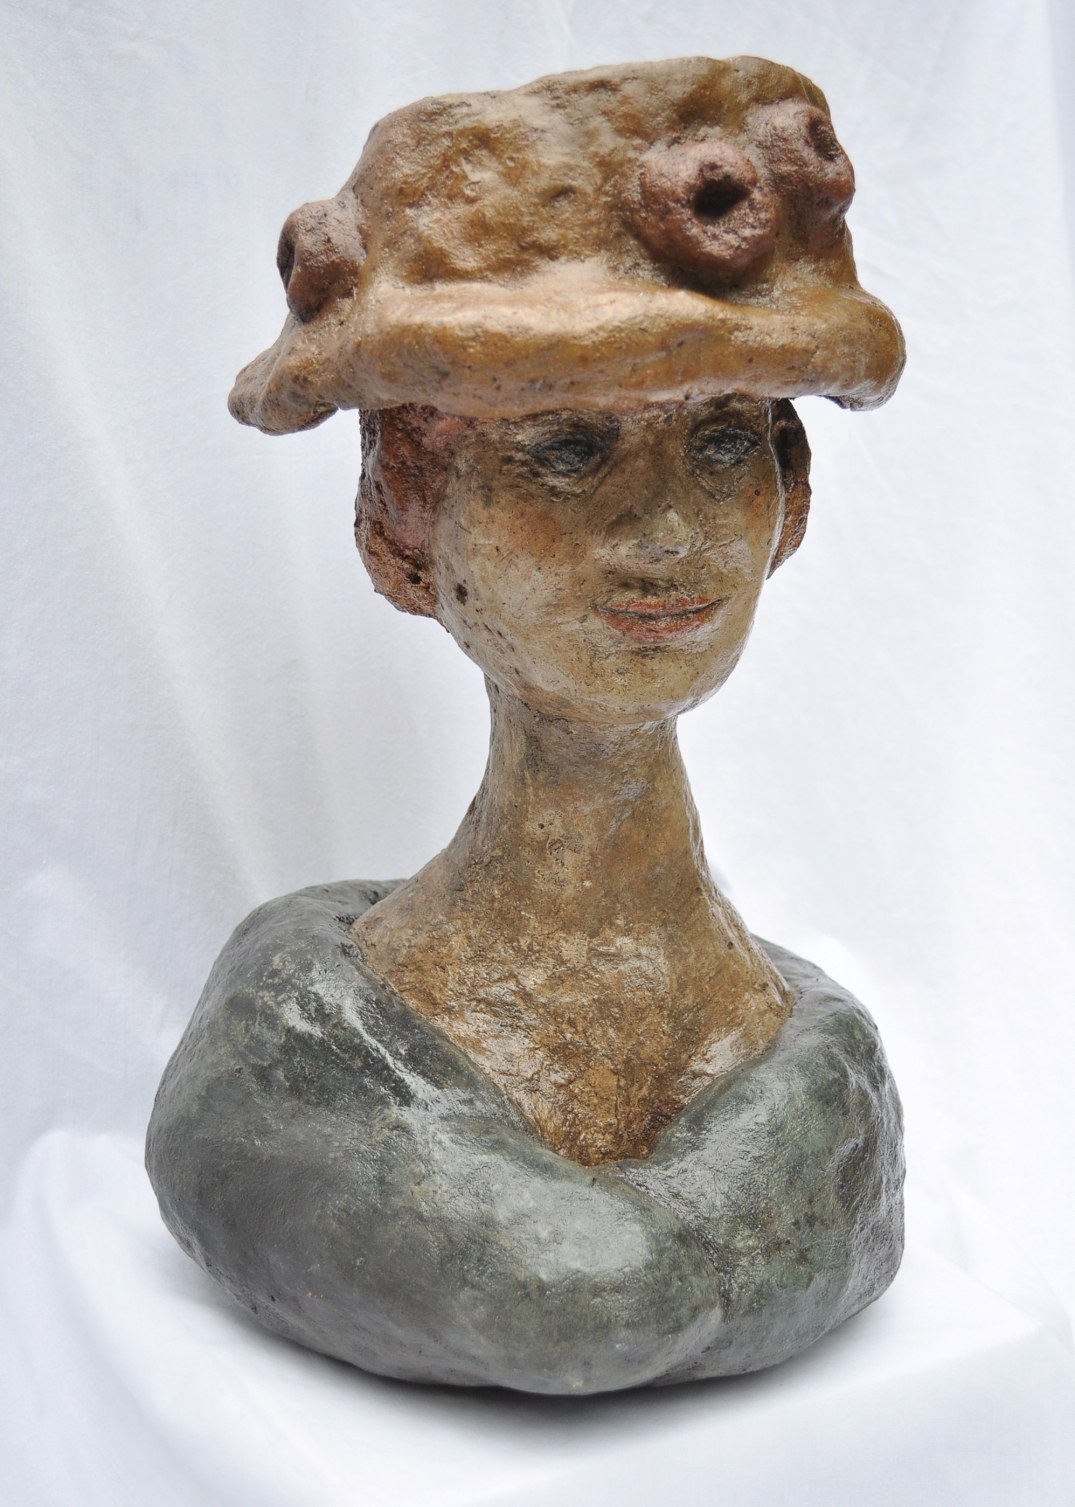 Sally on Sunday  - bust and flower pot hat made with concrete